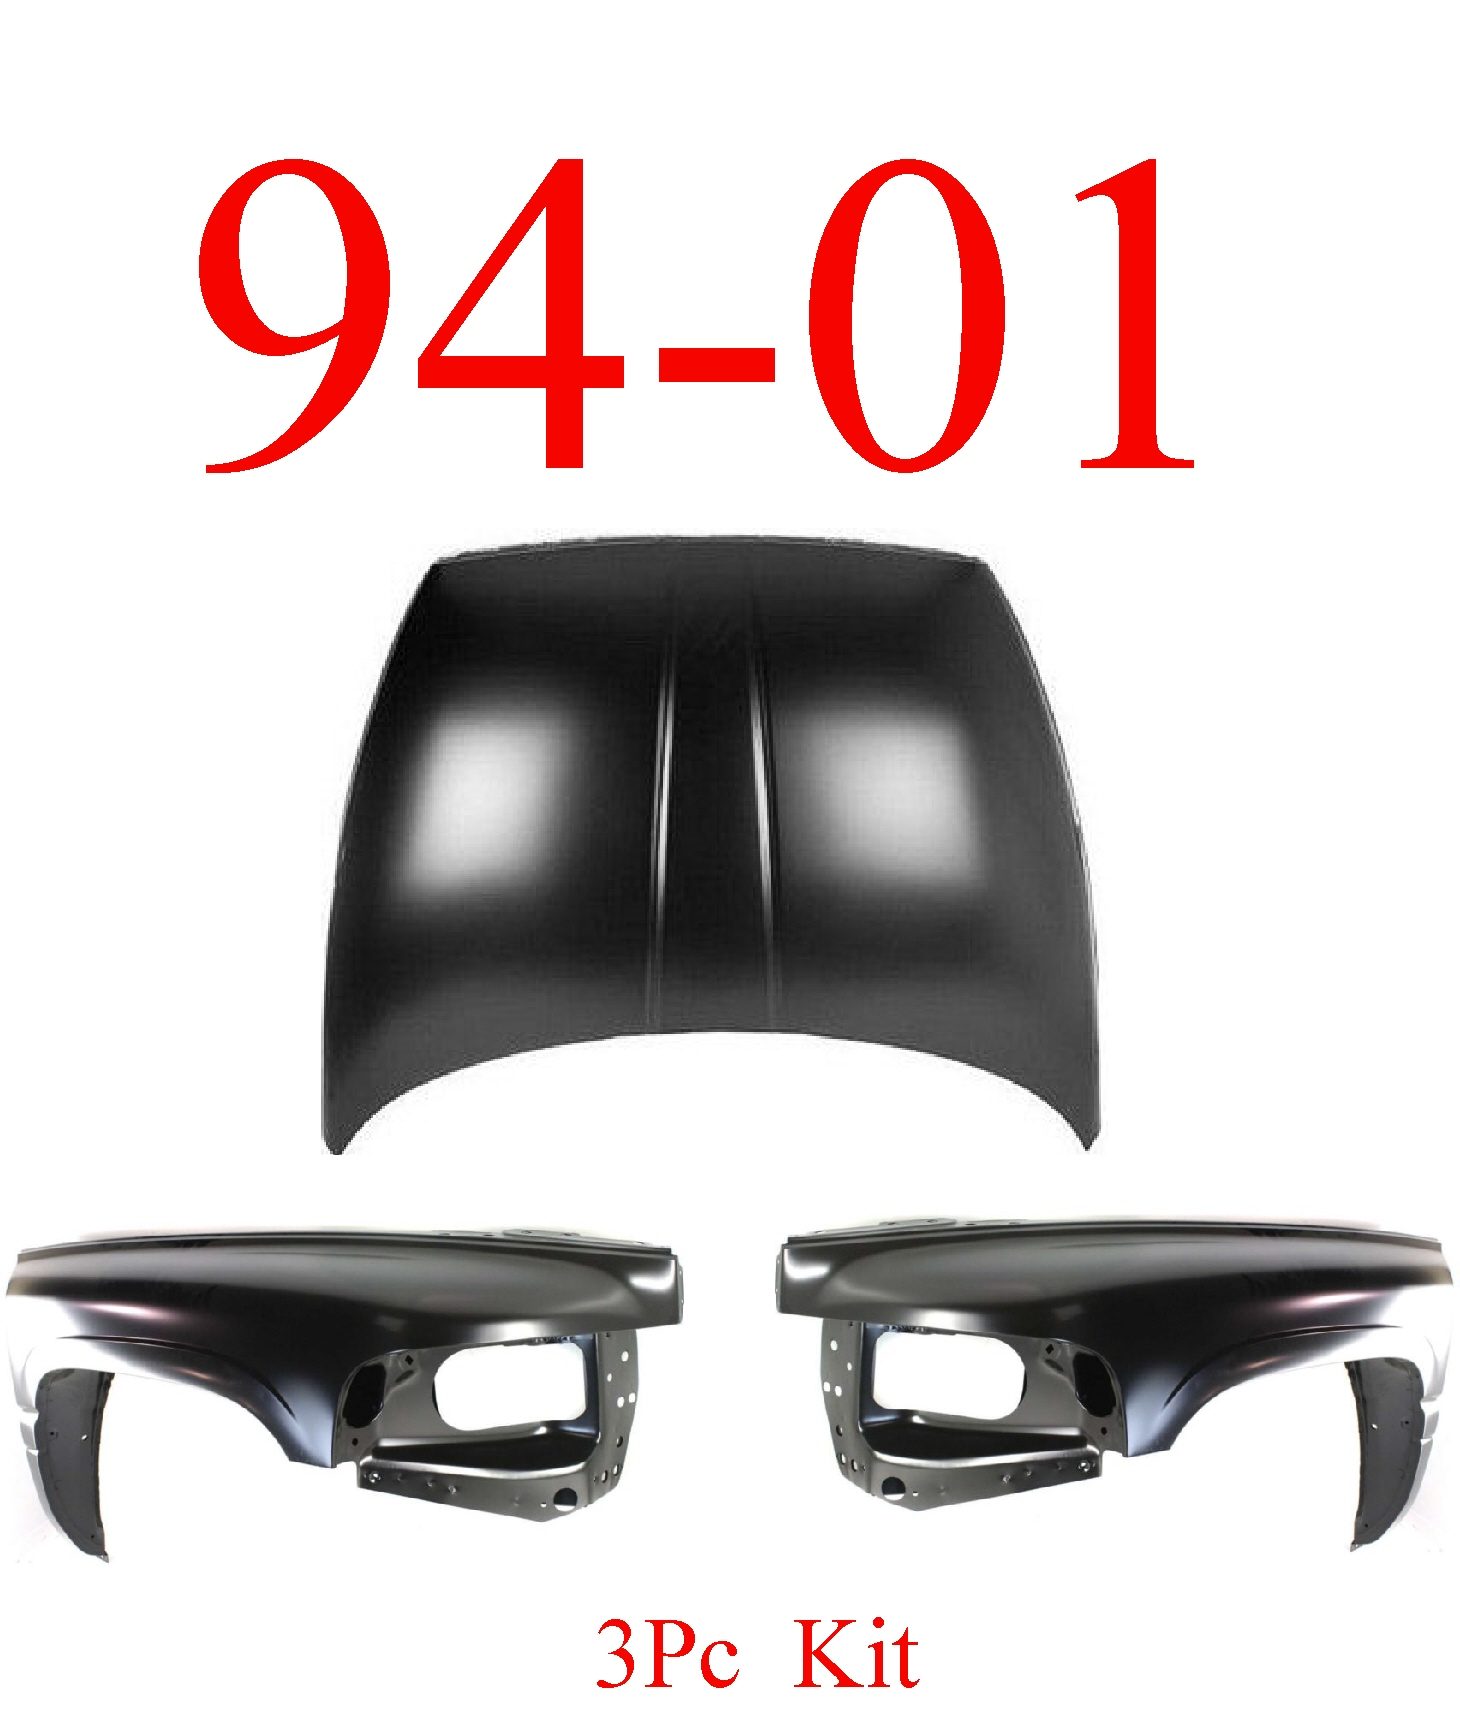 94-01 Dodge Ram 3Pc Hood & Fender Assembly Kit